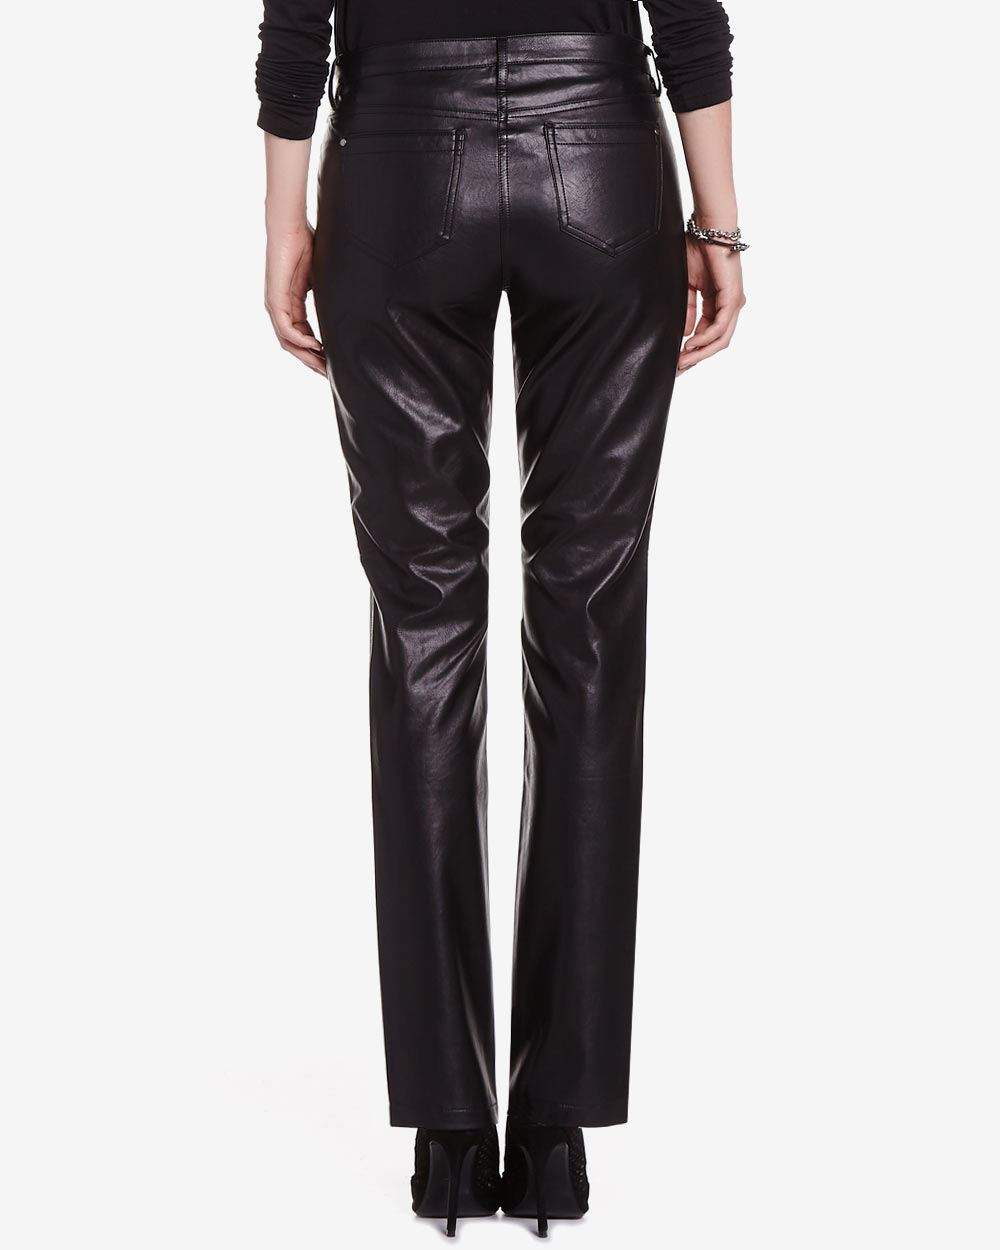 Looking for something new? Shopbop's collection of classic faux leather pants has just what you need. We know you'll find your new go-to look within our selective assortment of faux leather pants.